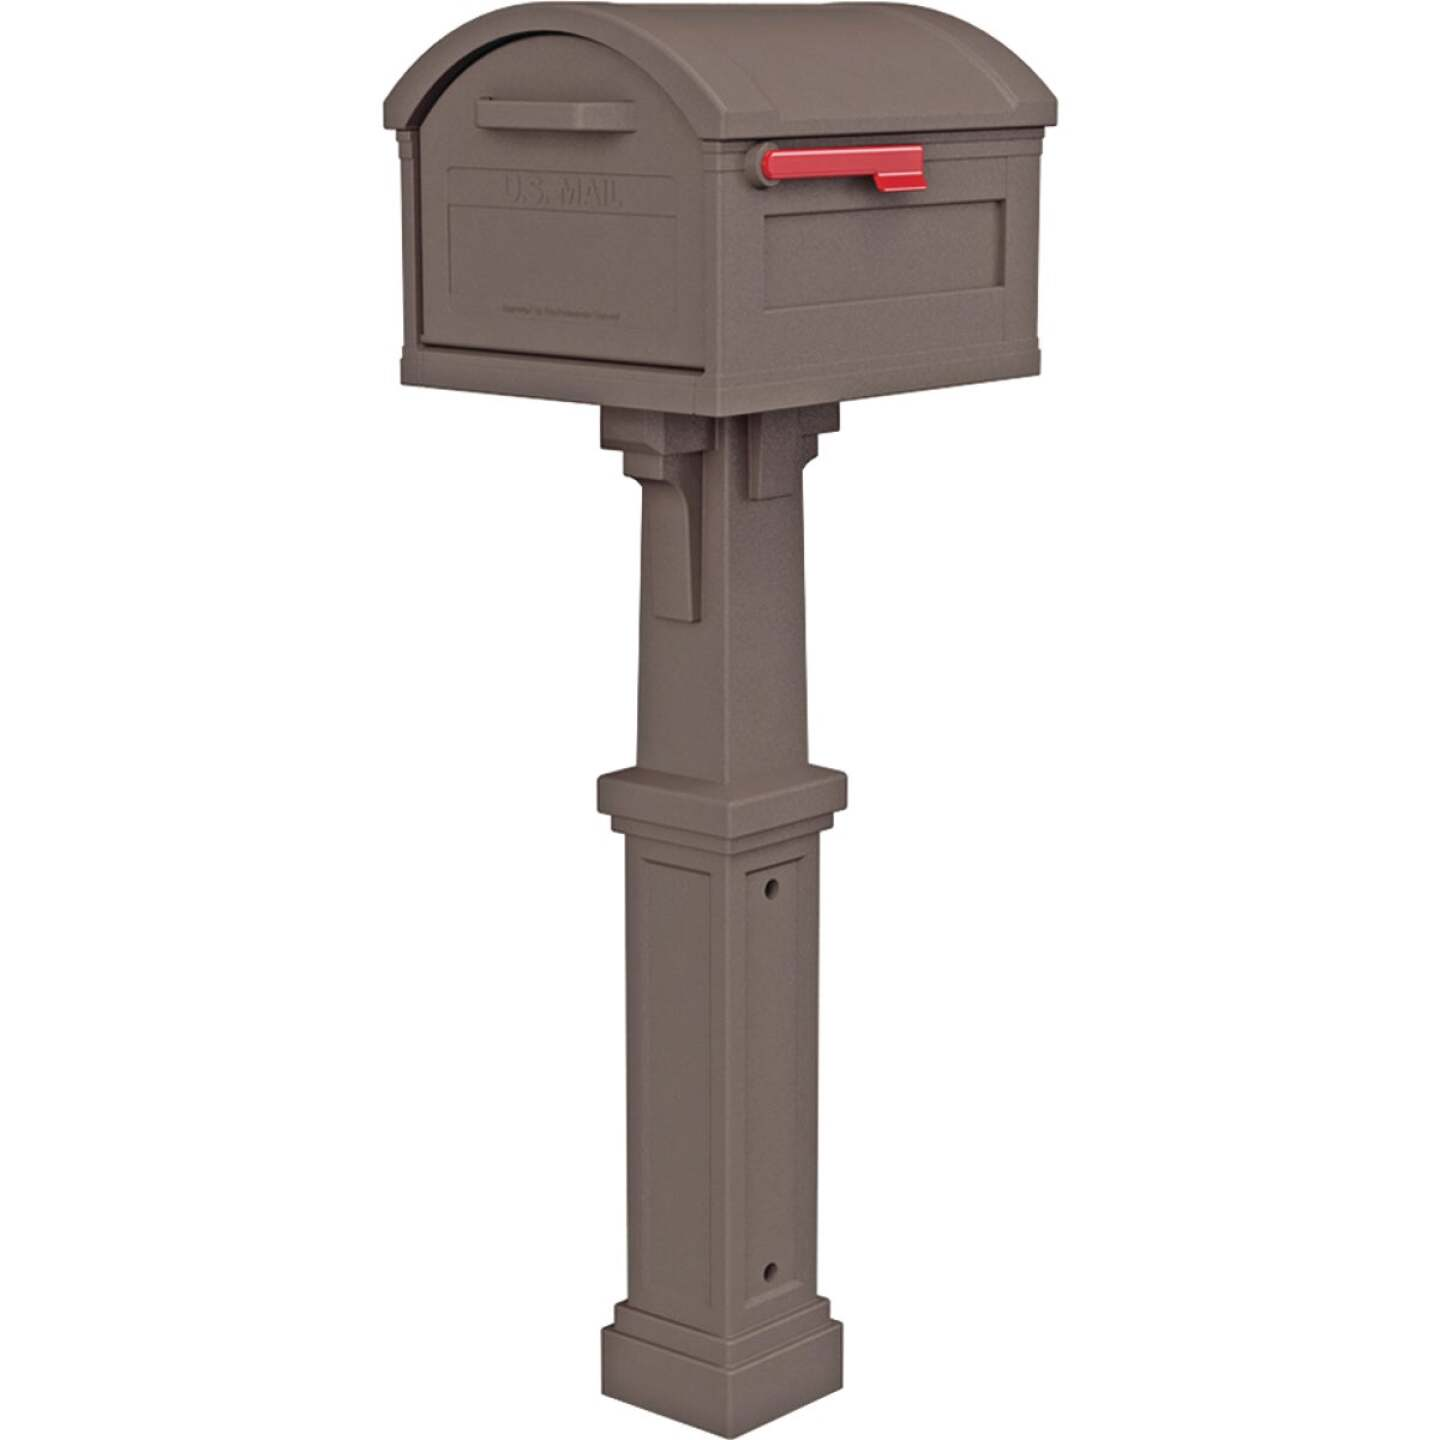 Gibraltar Grand Haven Mocha All In One Mailbox Image 1